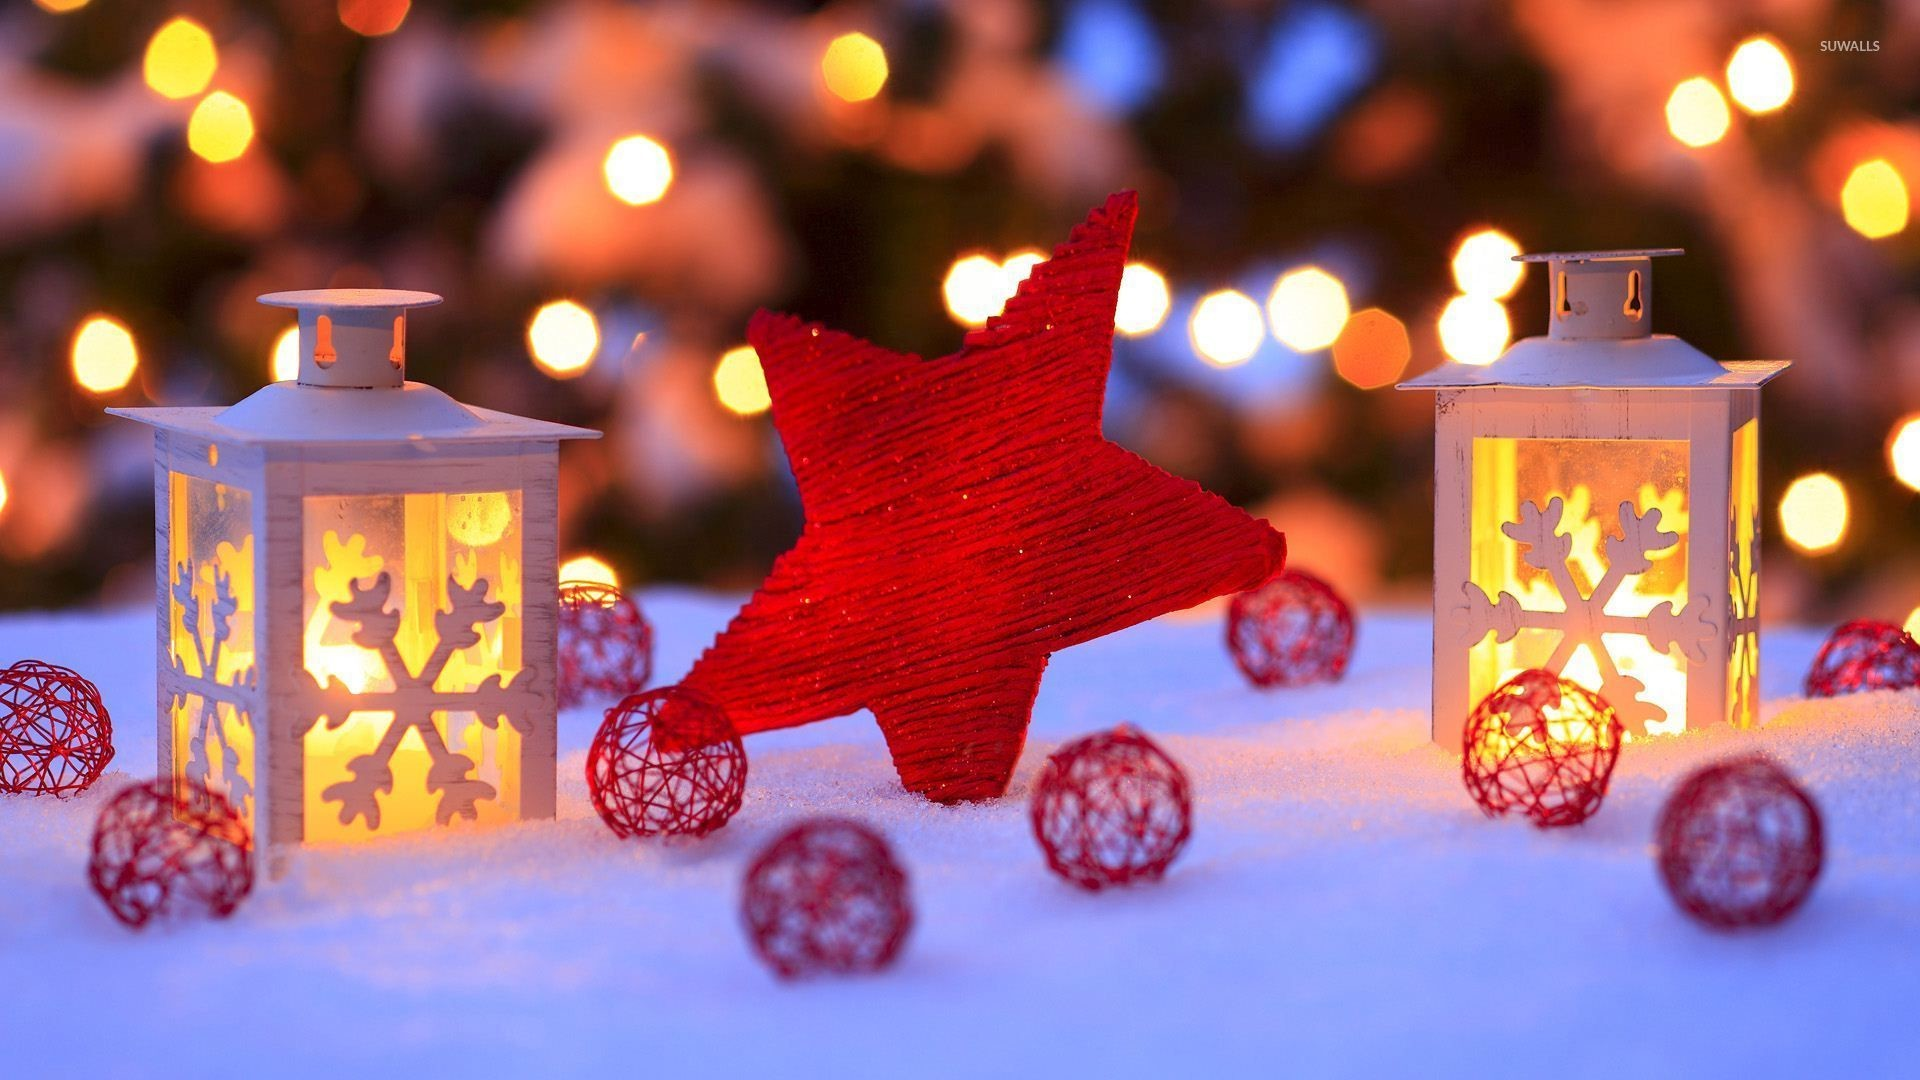 Red star in the snow by the candles wallpaper · Holidays · Christmas · Star  · Candle · …